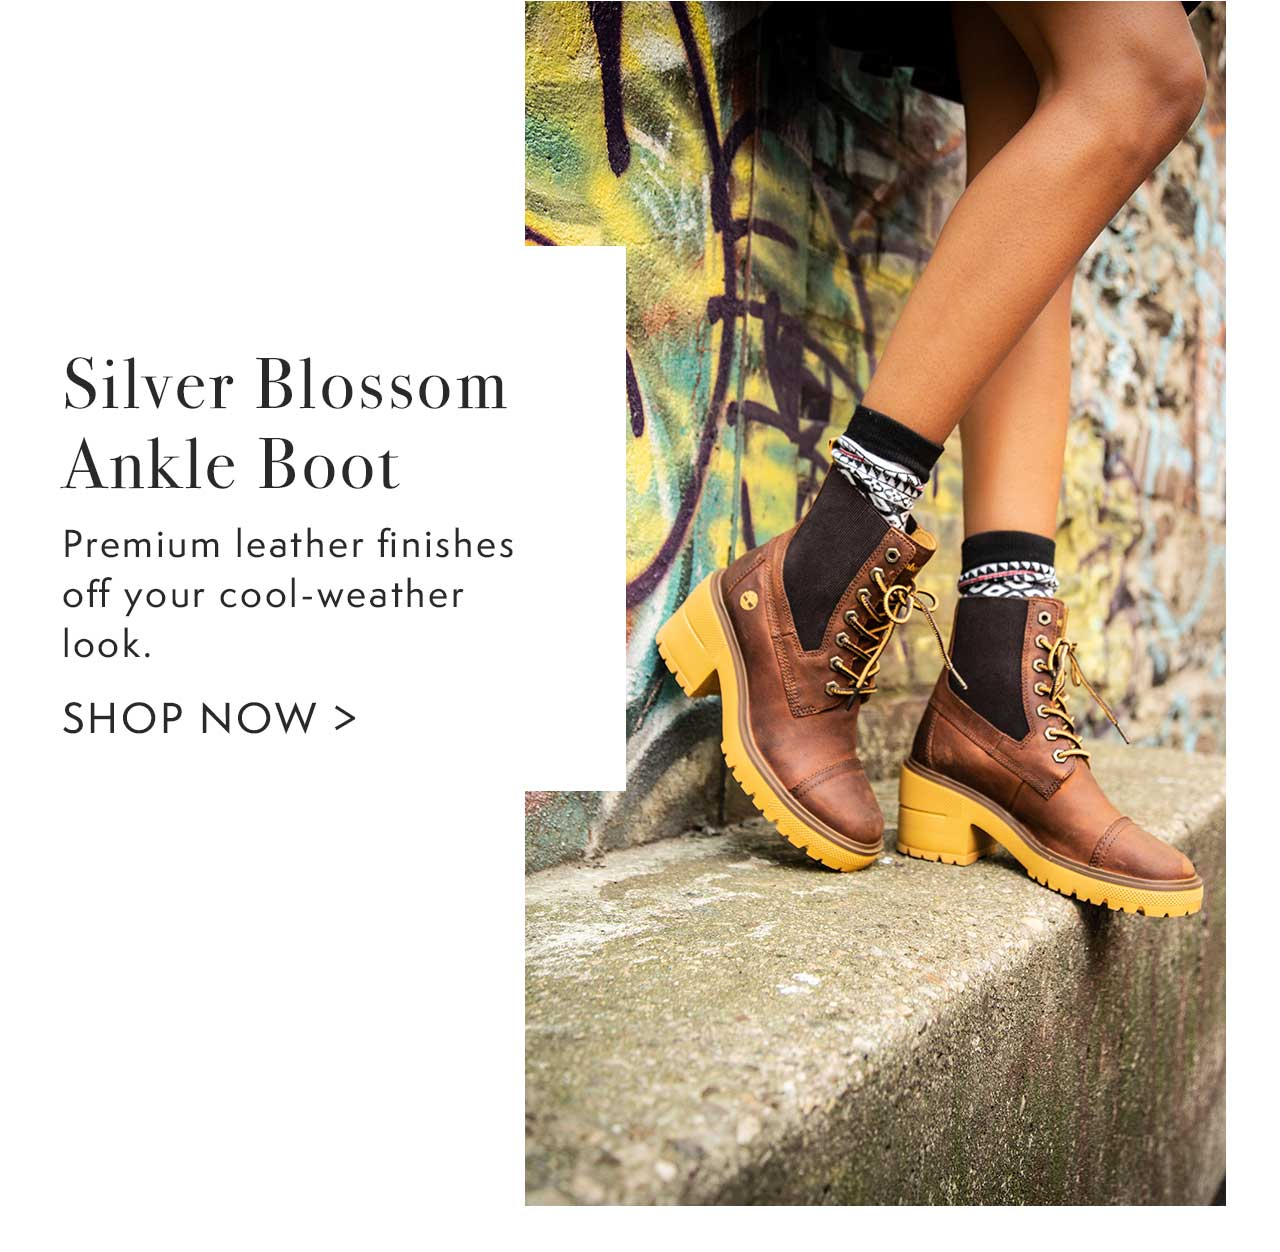 Silver Blossom Ankle Boot                                                Shop Now